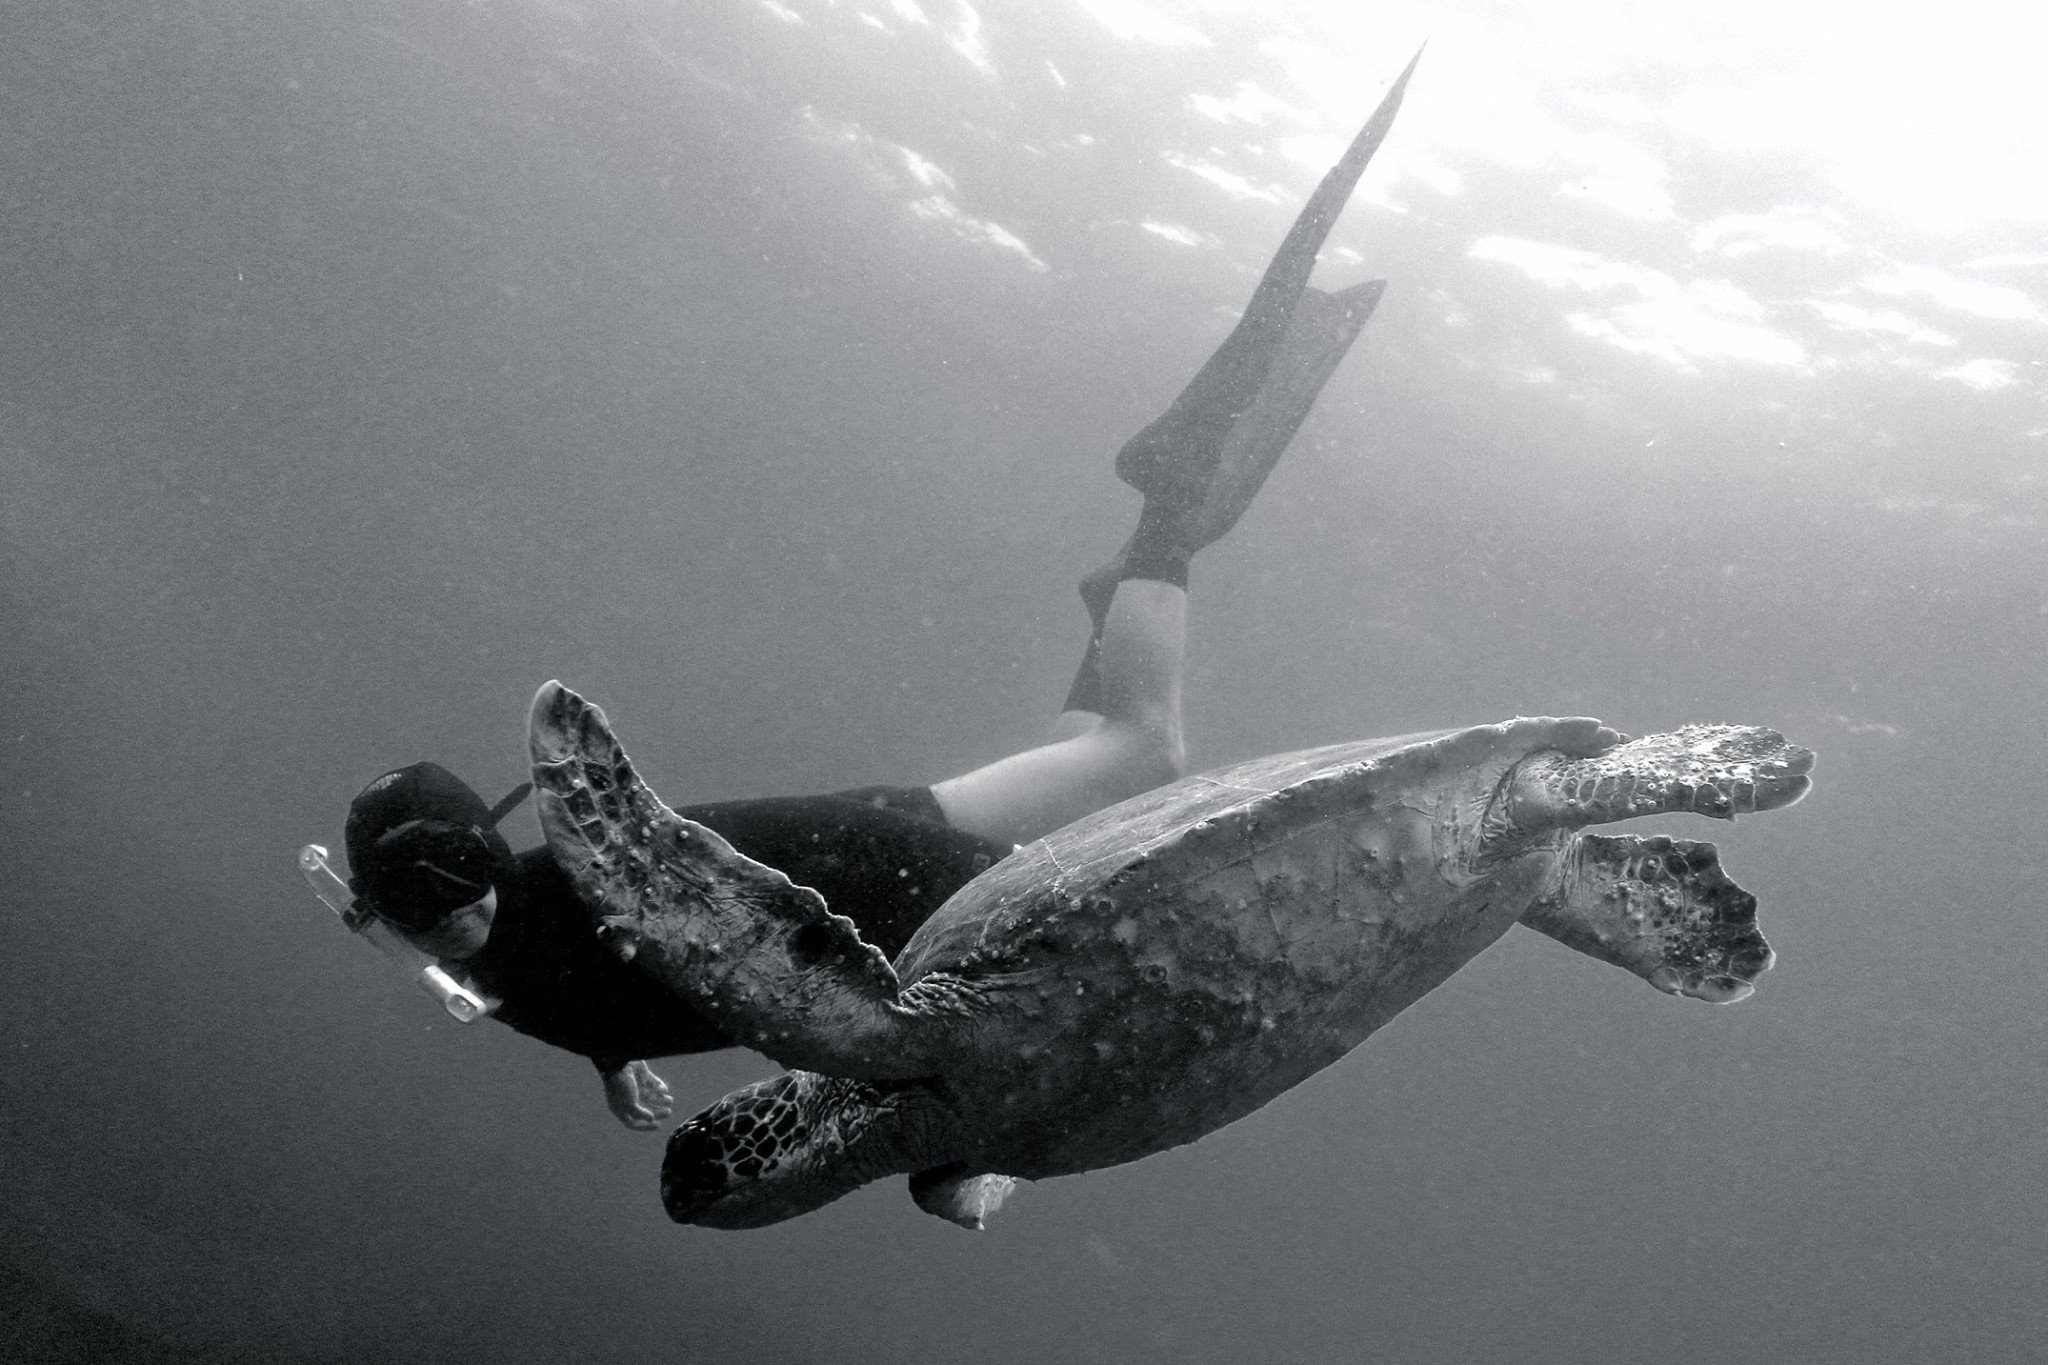 Hanging-with-a-turtle-at-Julian-Rocks-Marine-Sanctuary-photo-by-Nicole-Mclachlan